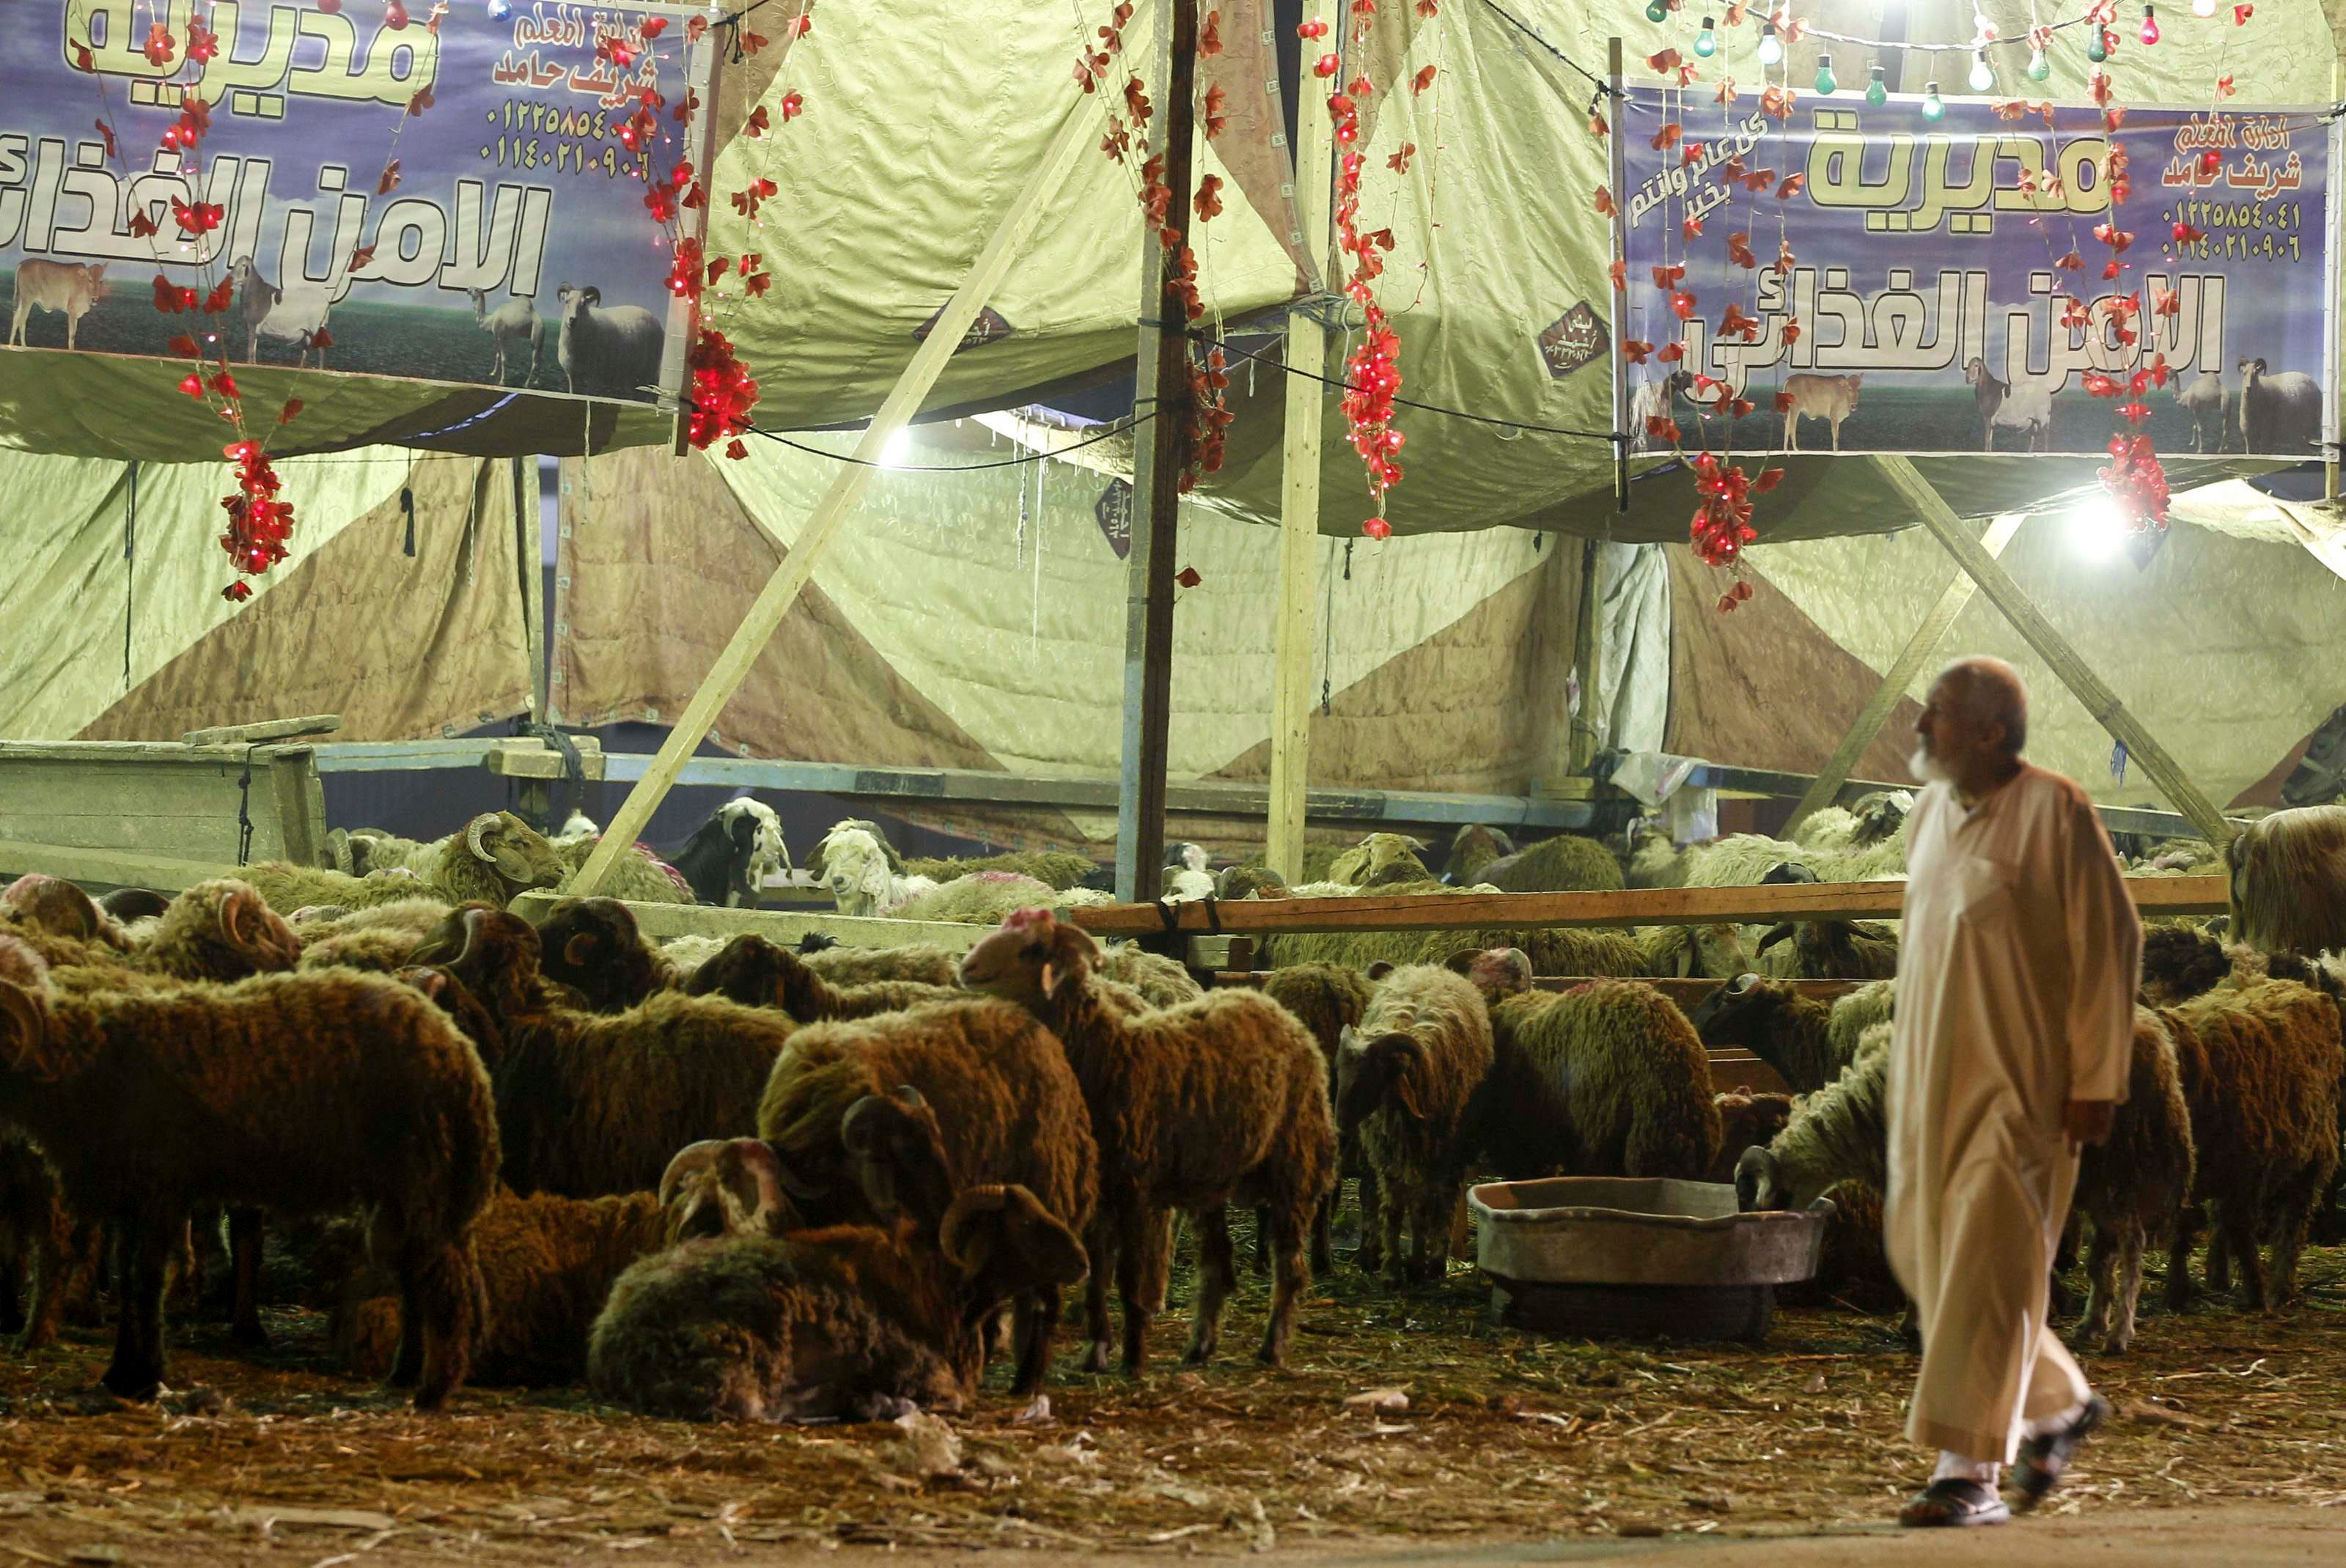 EGYPT: A man walks walks past sheep, ahead of Eid al-Adha, at a market in Cairo October 14, 2013. (Reuters)